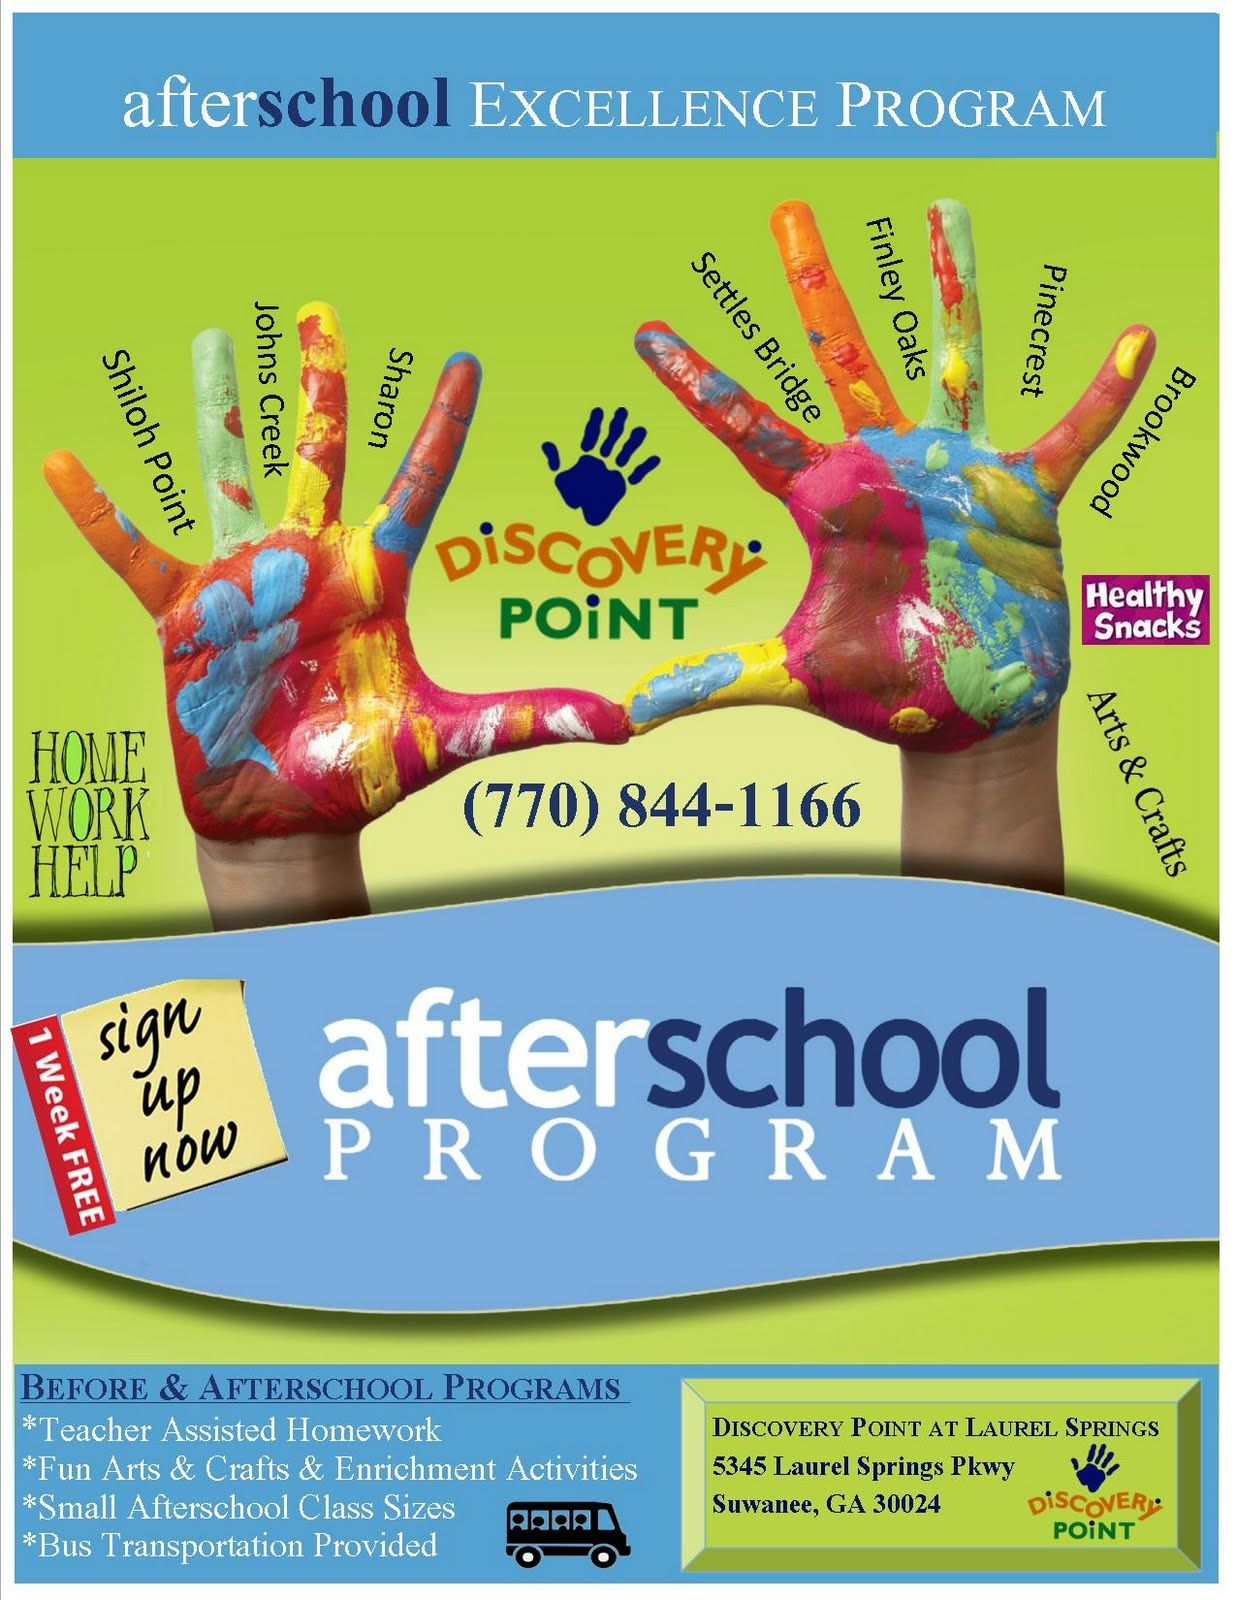 PAL After School Program Poster | My Design Work | Pinterest ...